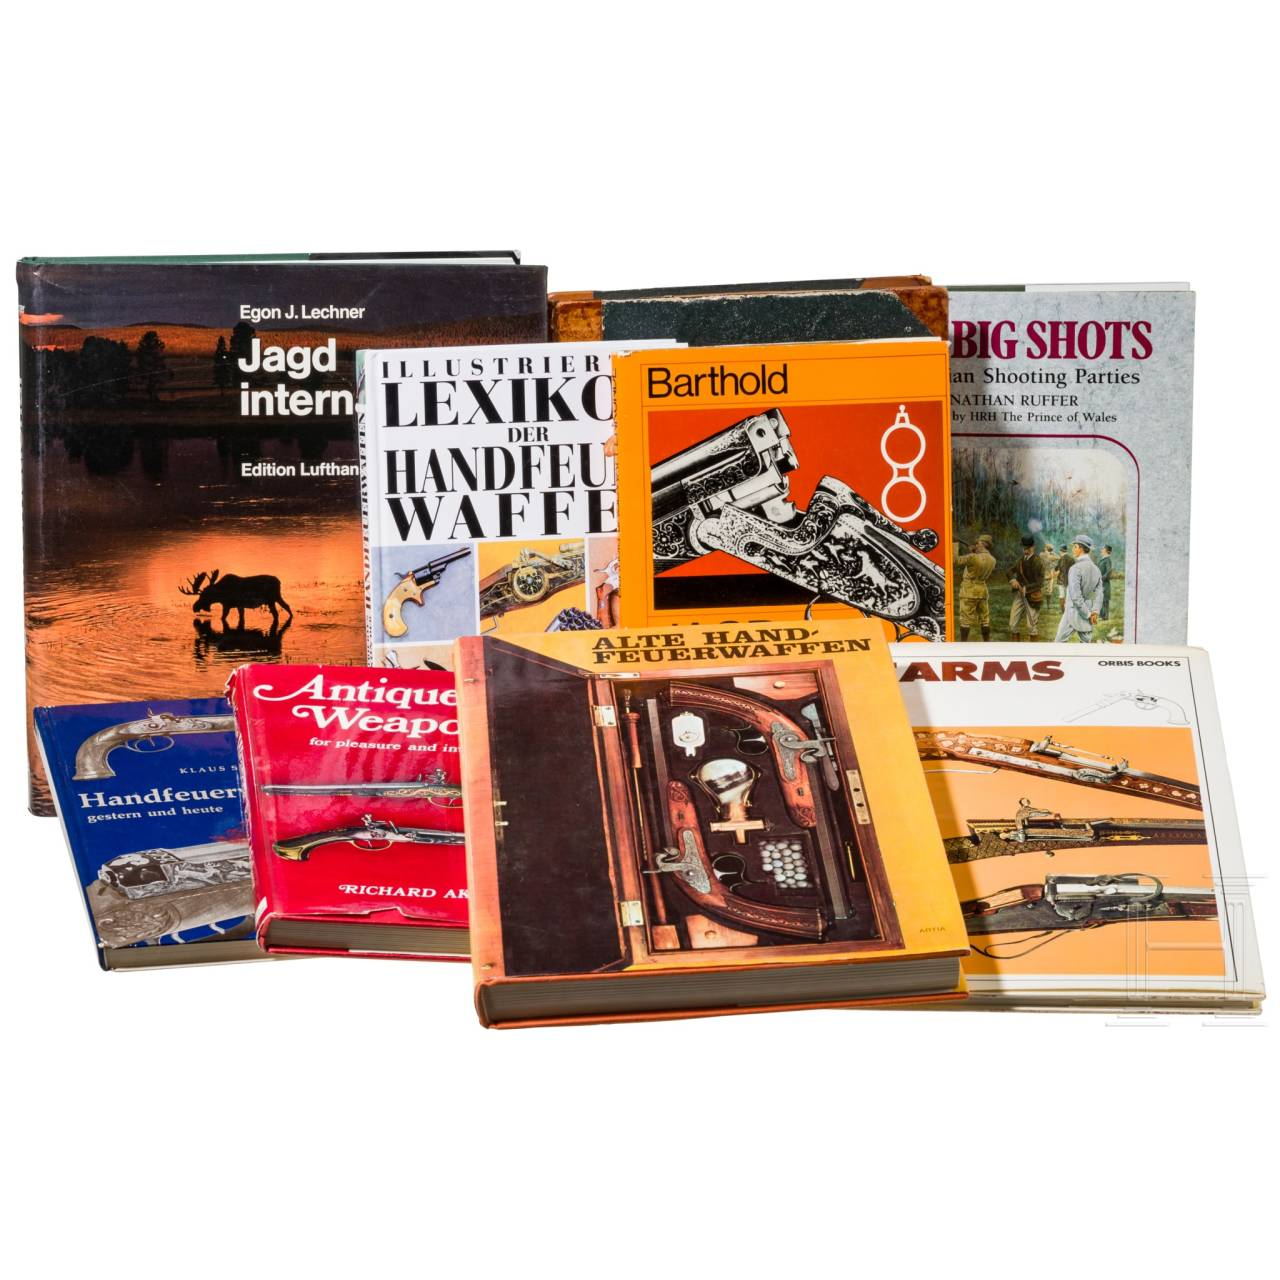 Nine books on hunting and firearms